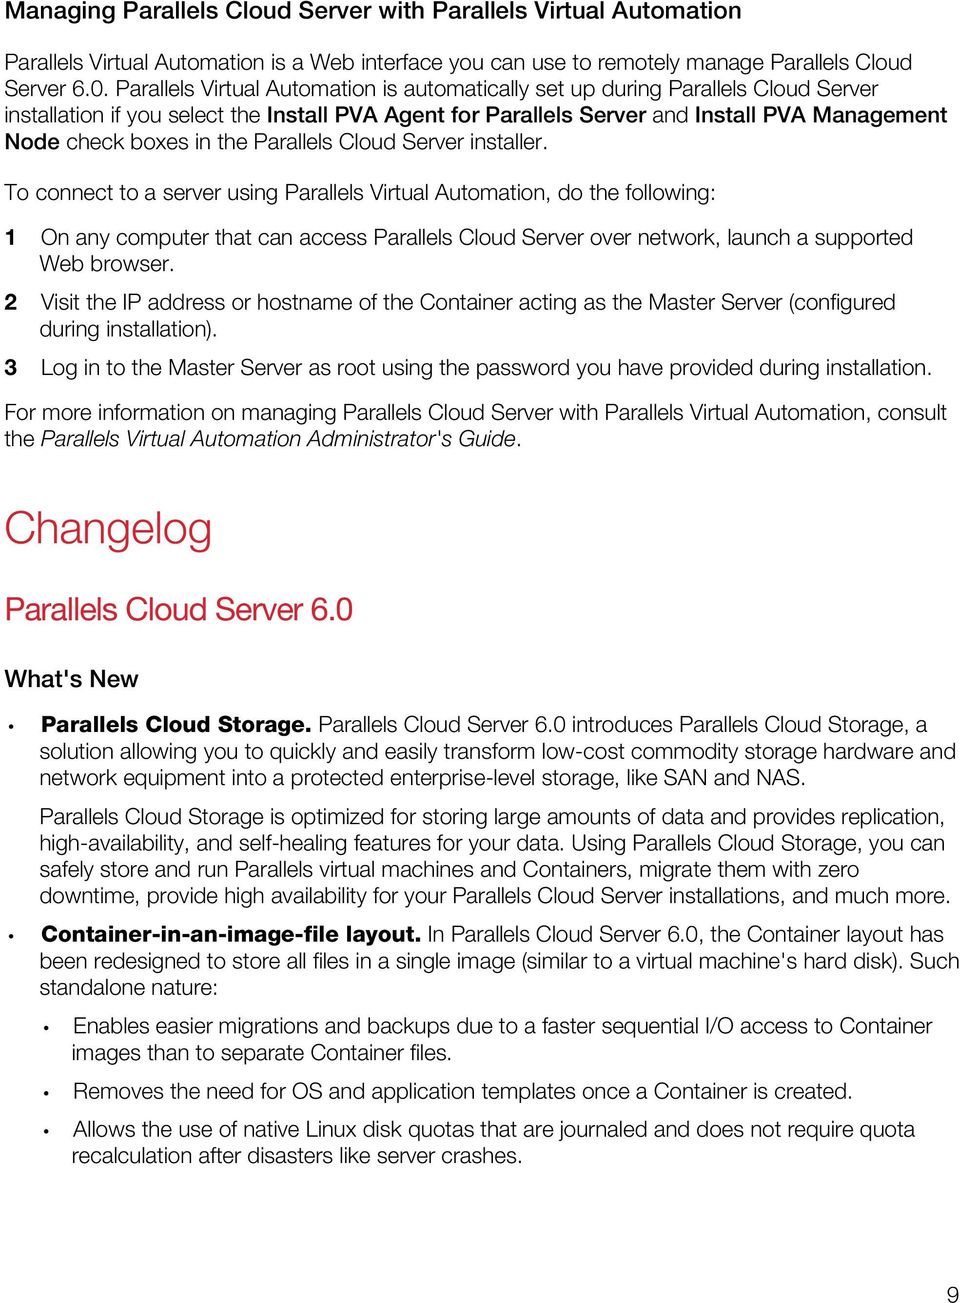 the Parallels Cloud Server installer.